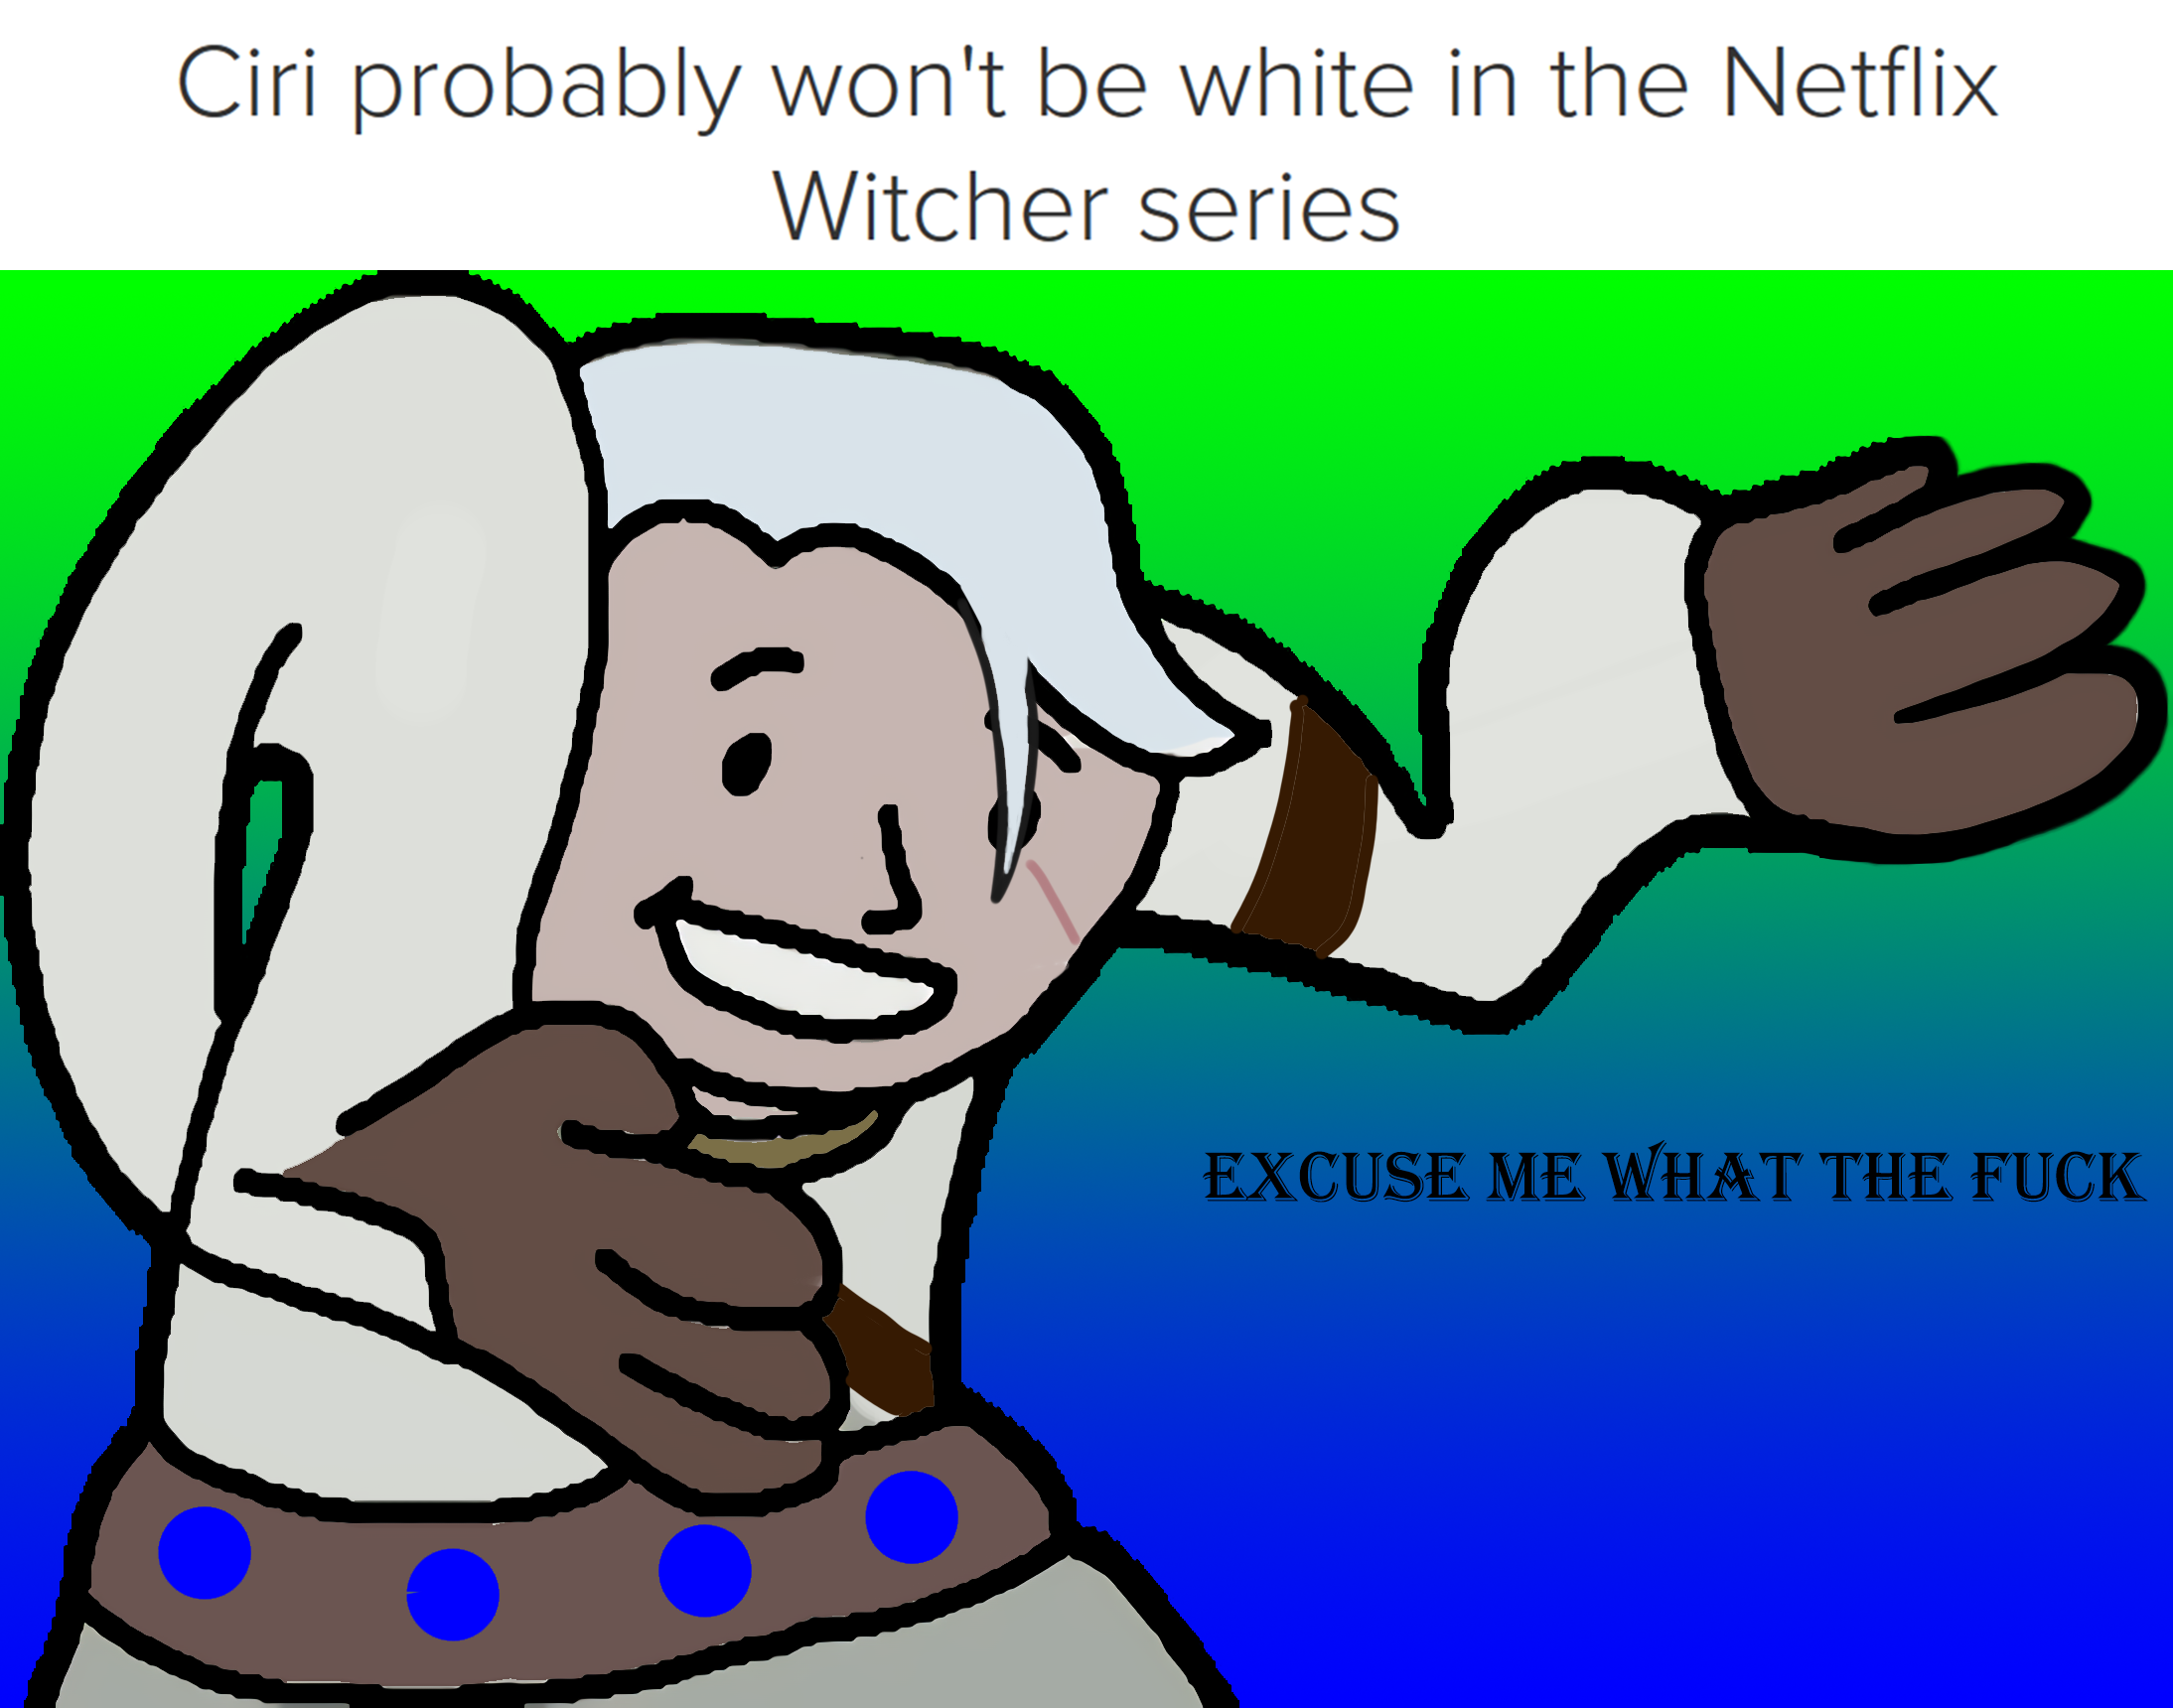 Ciri probably woni be whie in ihe noiflix witcher series excuse me what the